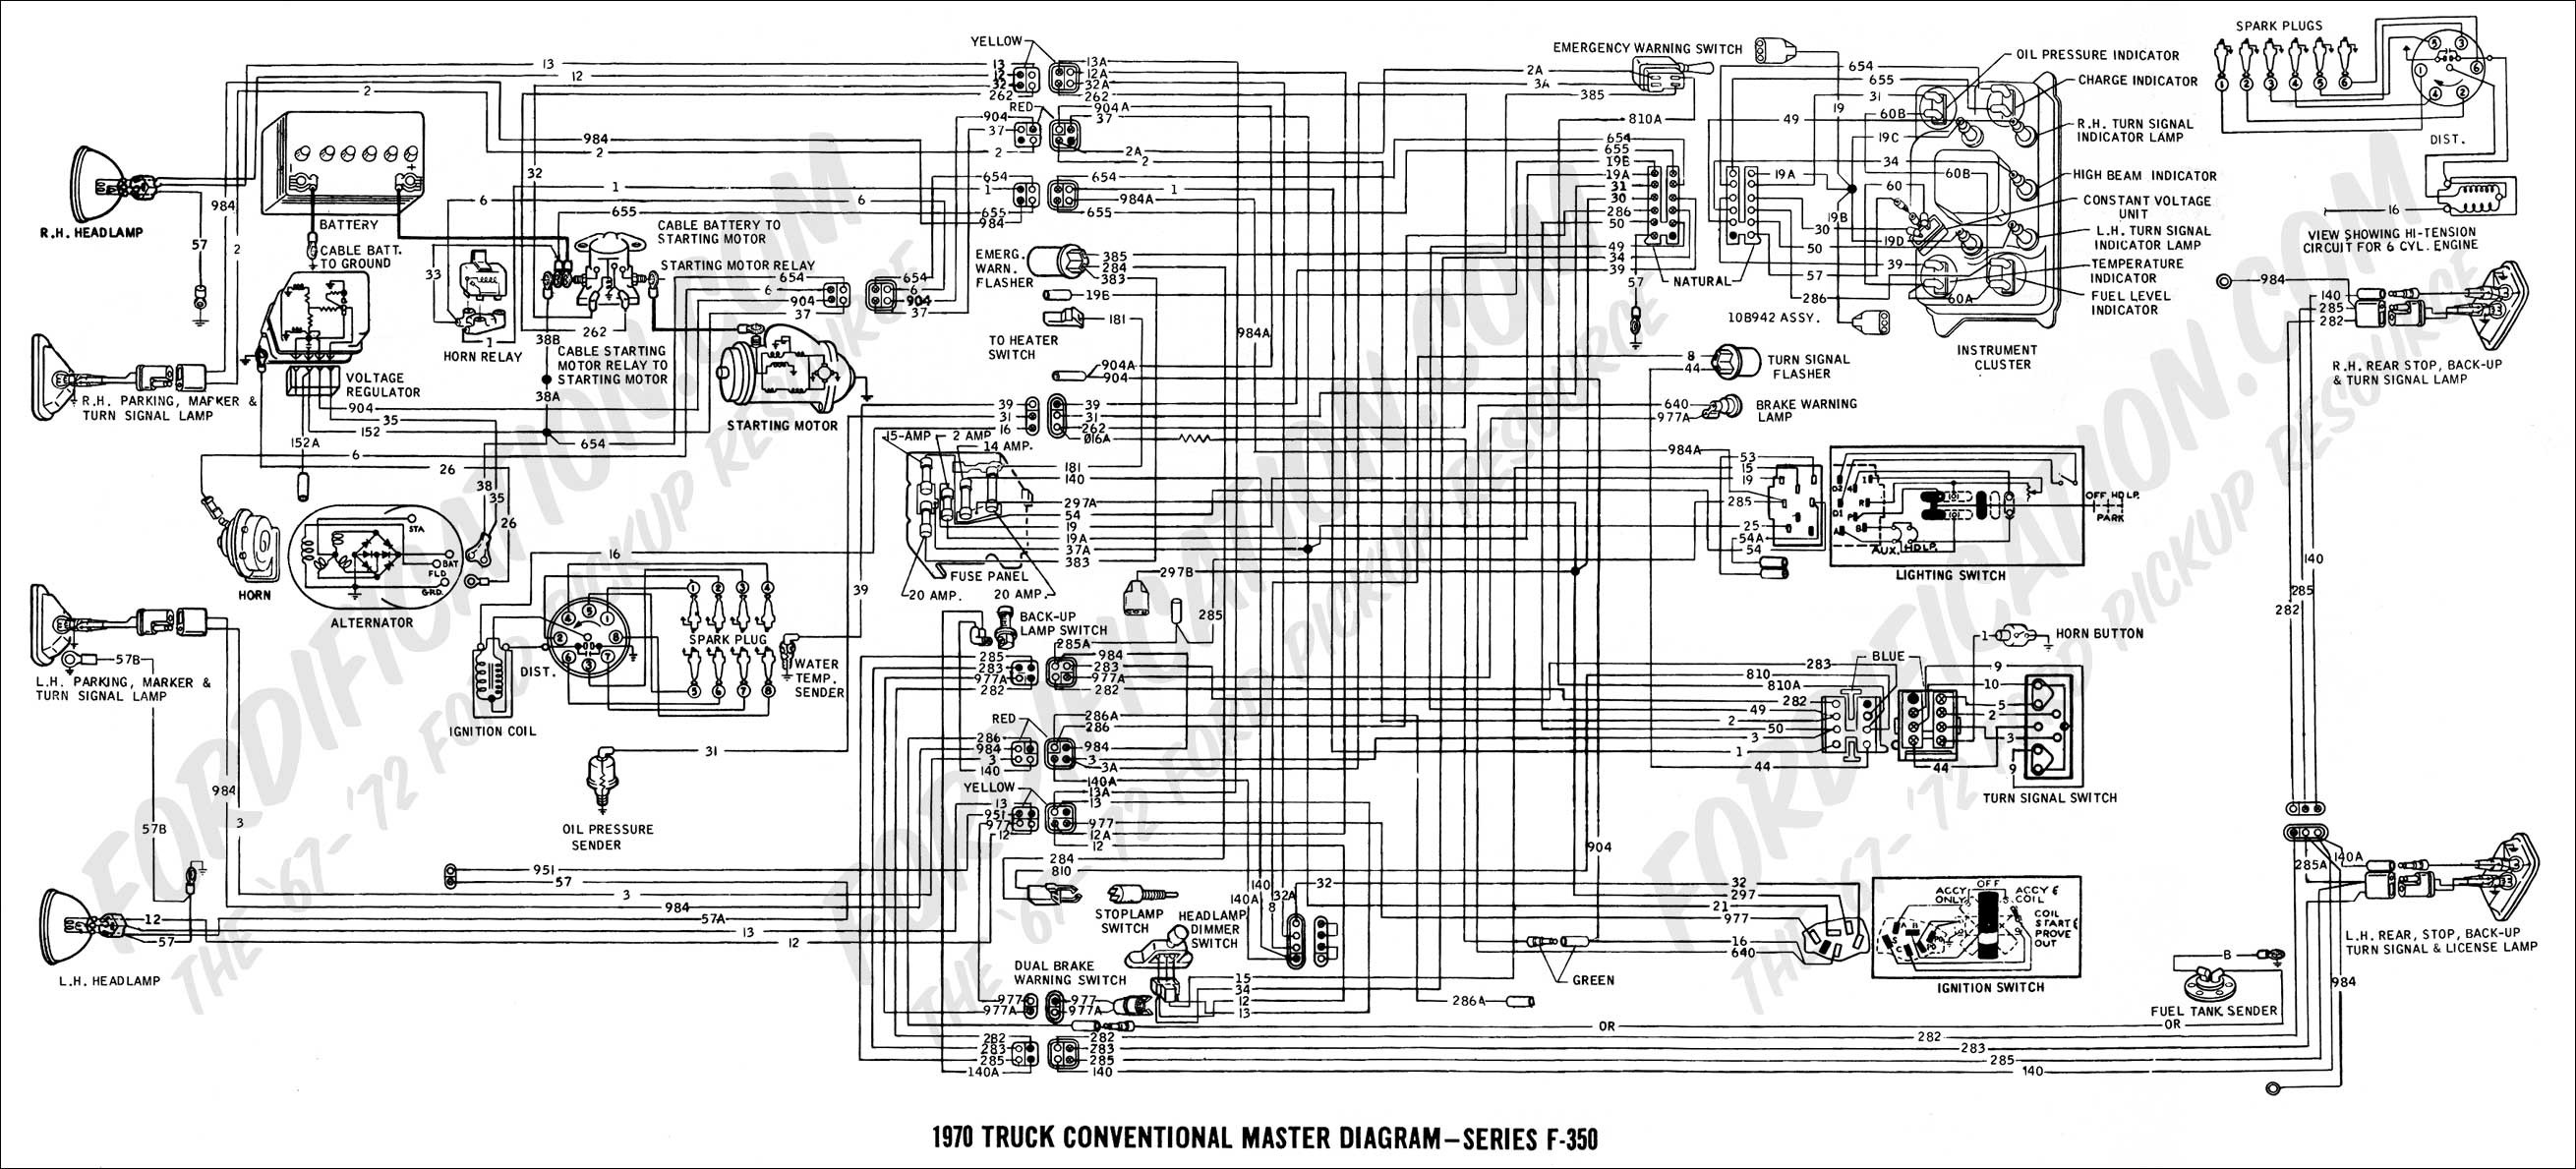 Wiring Diagram for 2000 ford F250 Taillights 2001 ford F350 Wiring Diagram Wiring Diagram Schematic Of Wiring Diagram for 2000 ford F250 Taillights